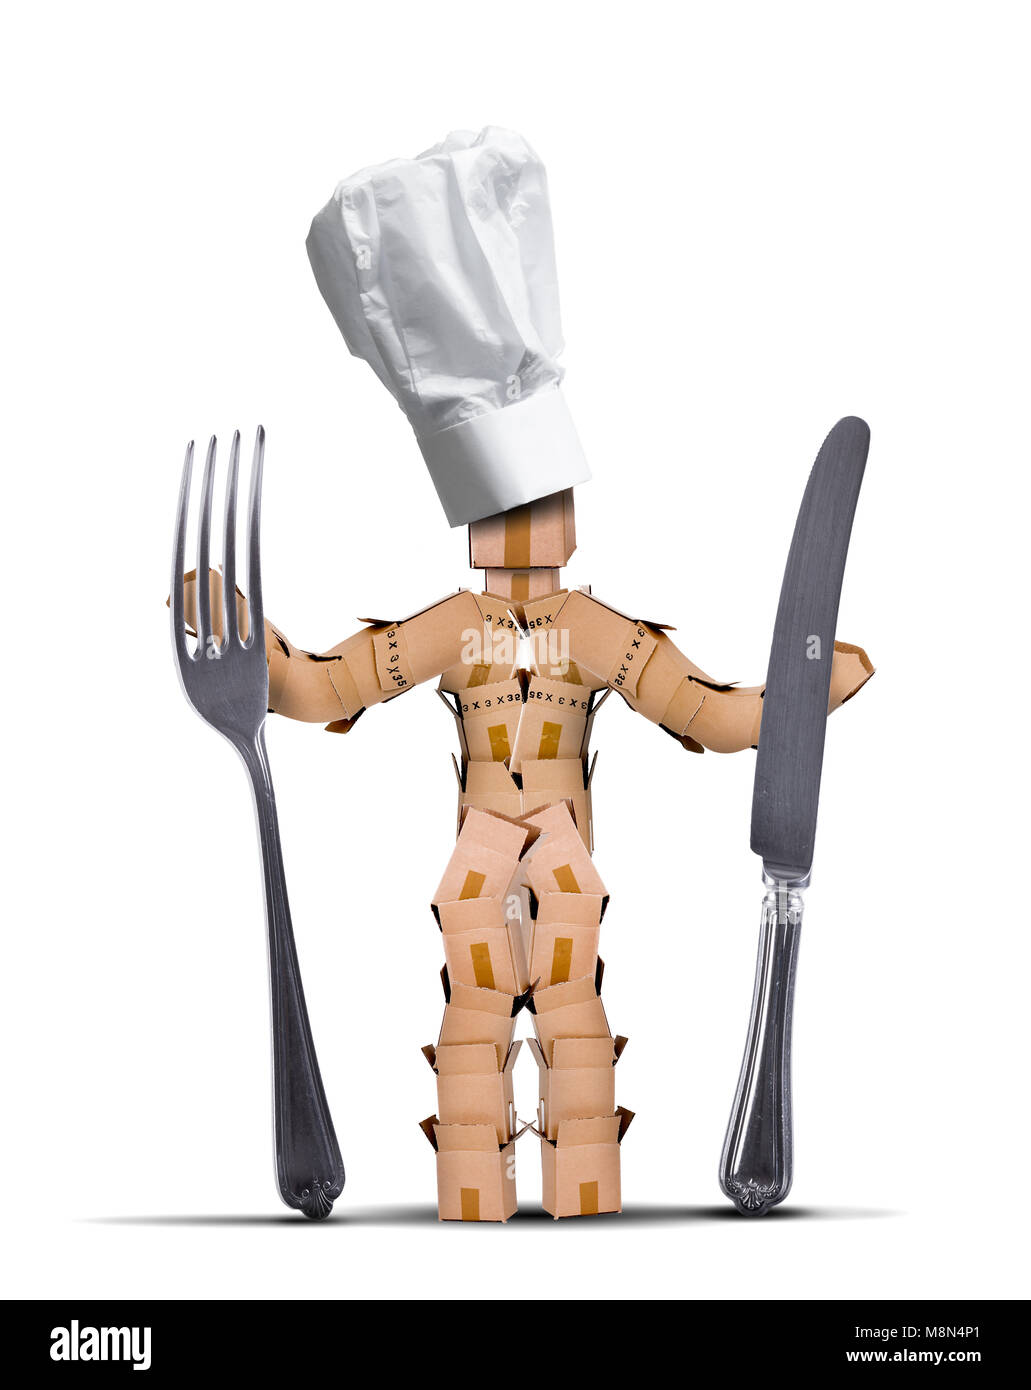 Chef box character with tall chef hat holding big knife and fork against a white background. Cooking and kitchen - Stock Image